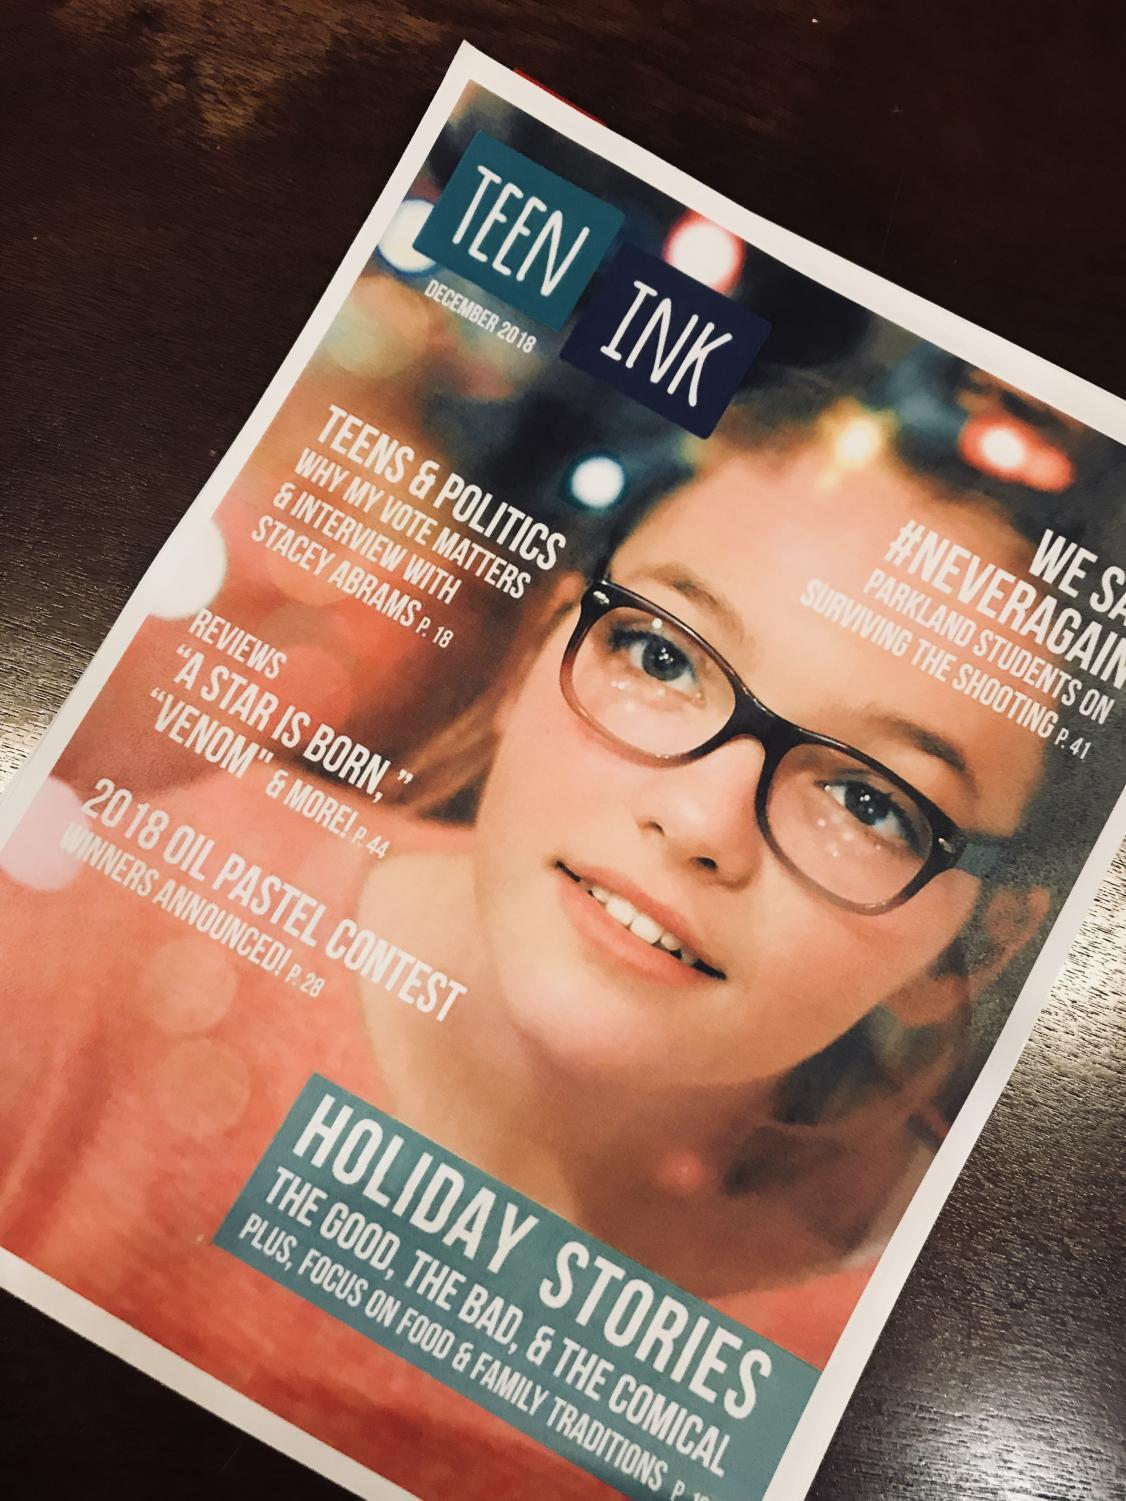 The Arrowhead students' published work can be found in the December issue of Teen Ink.